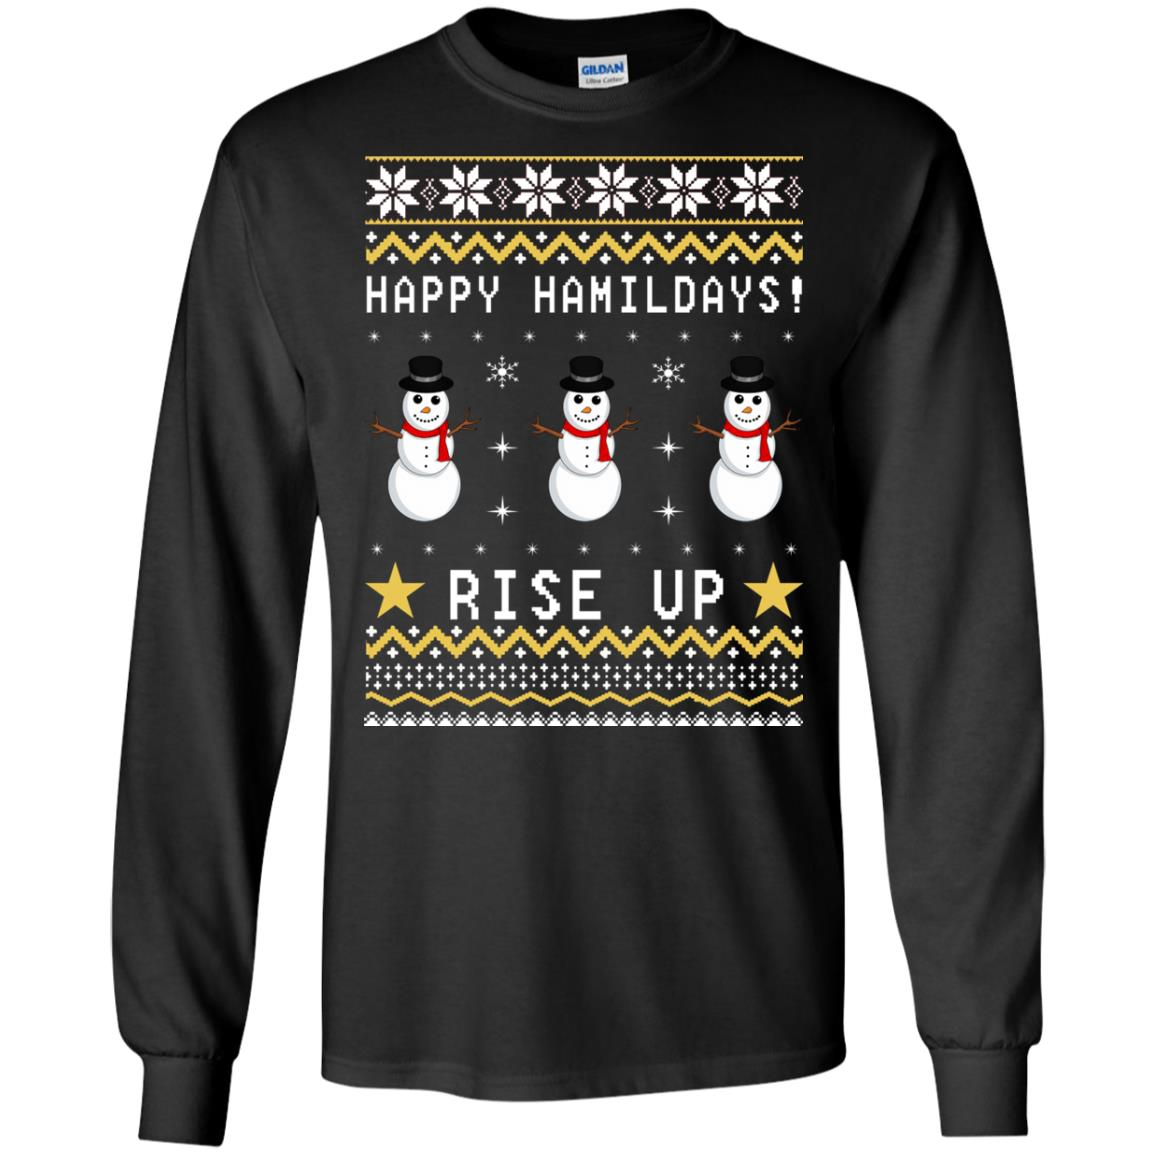 Happy Hamildays Rise Up Christmas Ugly Sweater, Shirt - image 3391